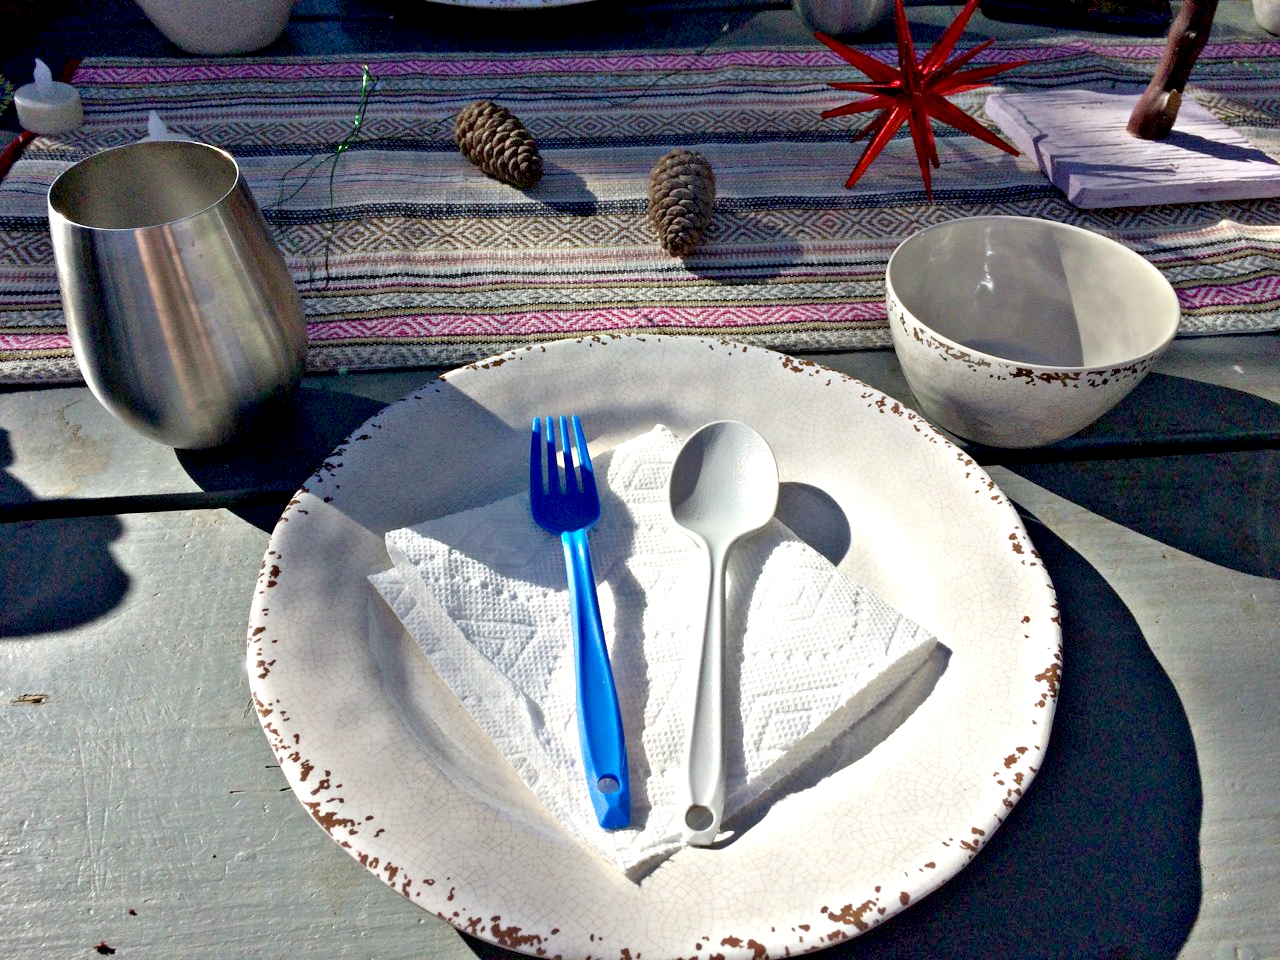 camping dishes, camping dishes and cookware, enamel camping dishes, melamine camping dishes, metal camping dishes, camping dishes enamelware, enamelware,